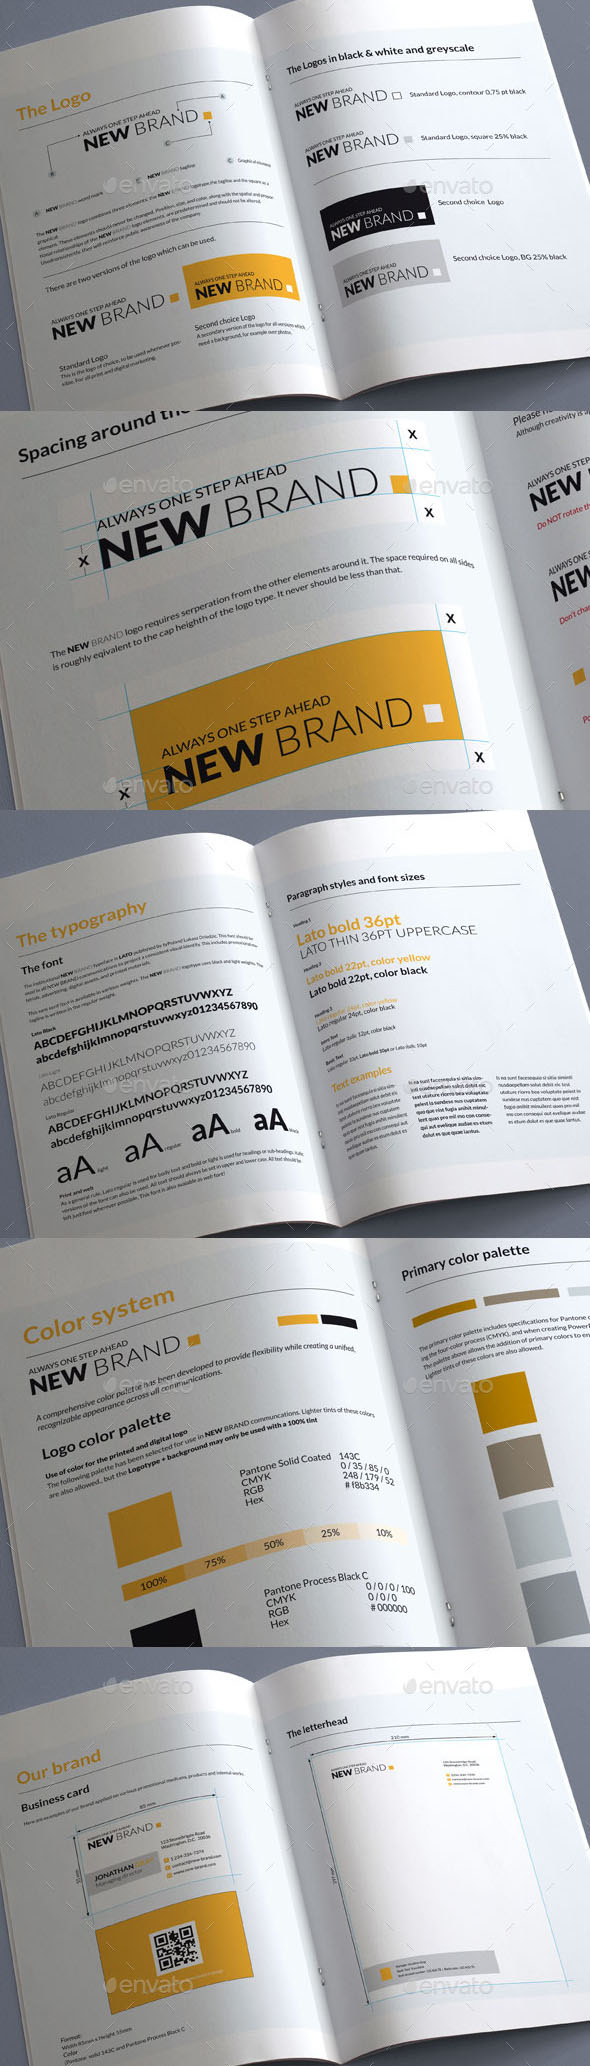 Brand Guidelines—20 Pages